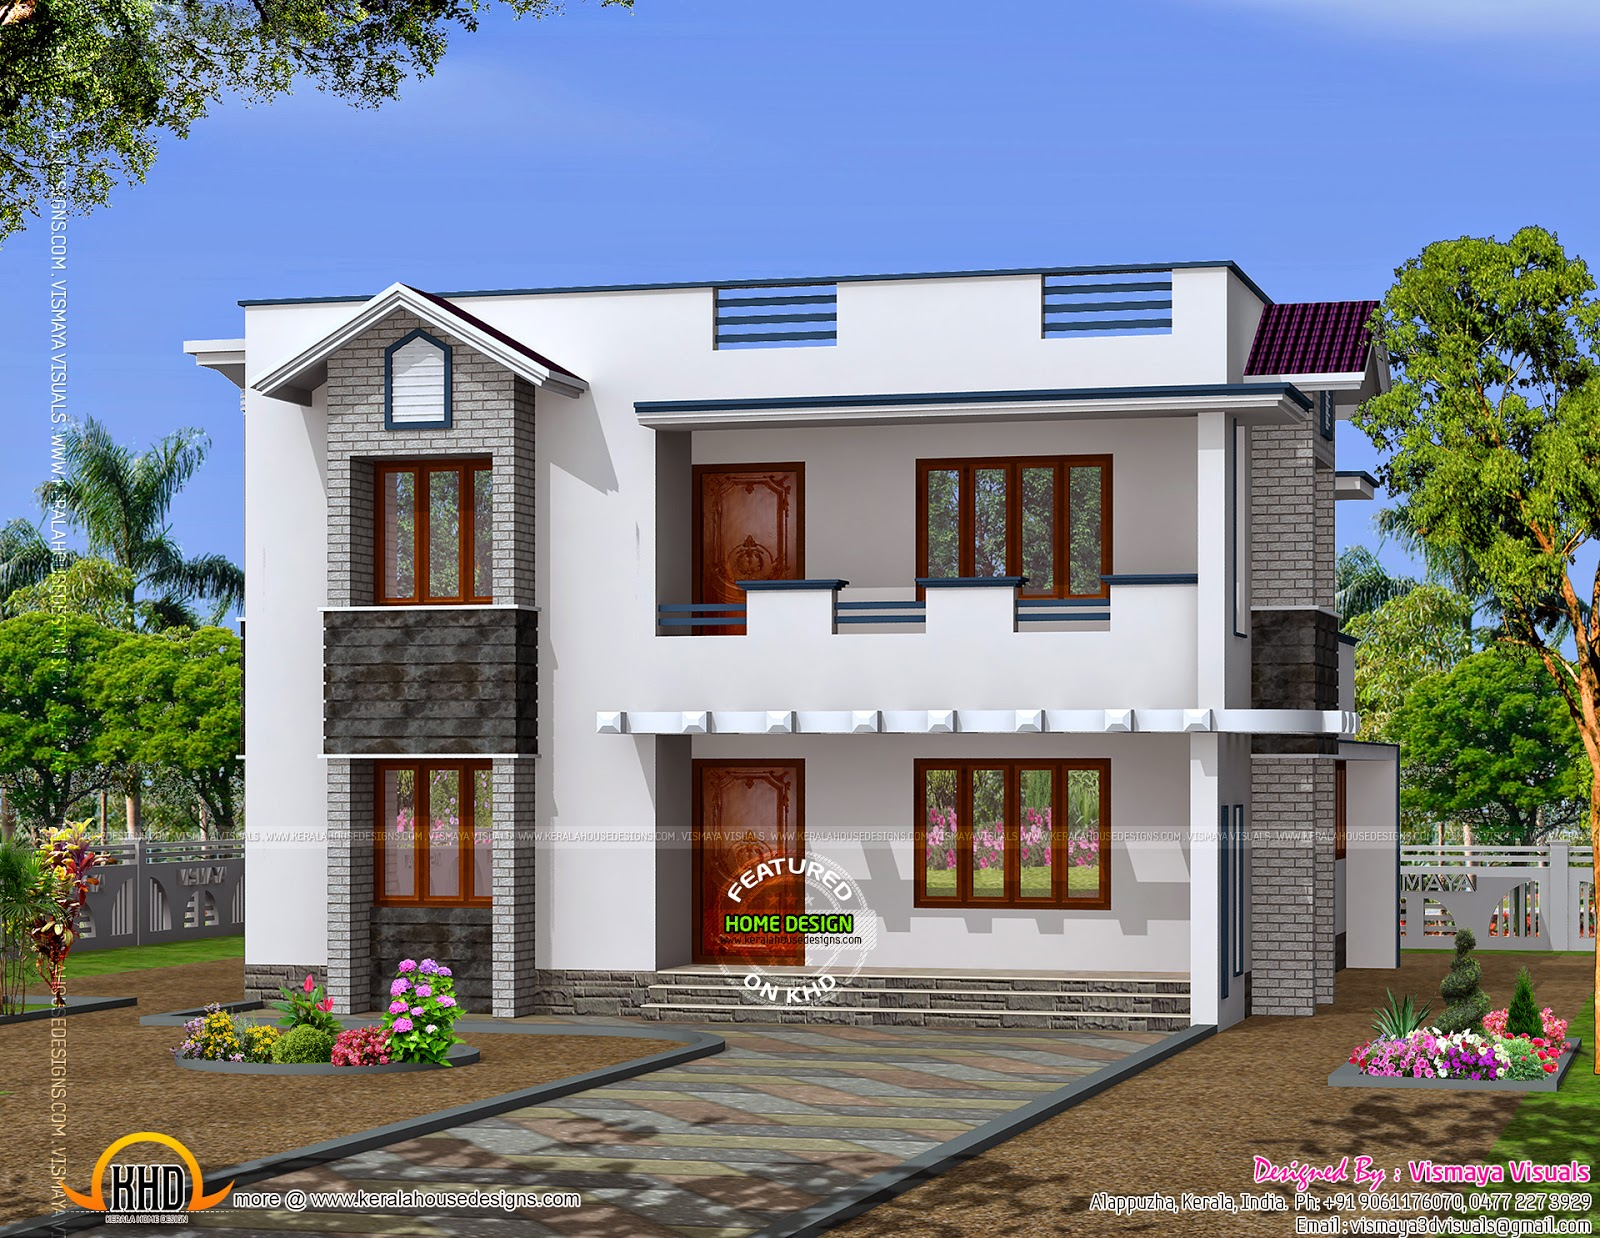 Simple design home - Kerala home design and floor plans on simple cloud design, country kitchen designs, simple wood homes, simple villa design, simple modern homes, simple modern exterior design, simple small homes, long house designs, simple restaurant interior design, simple interior design ideas, simple closet design, small bathroom designs, house plan your own designs,